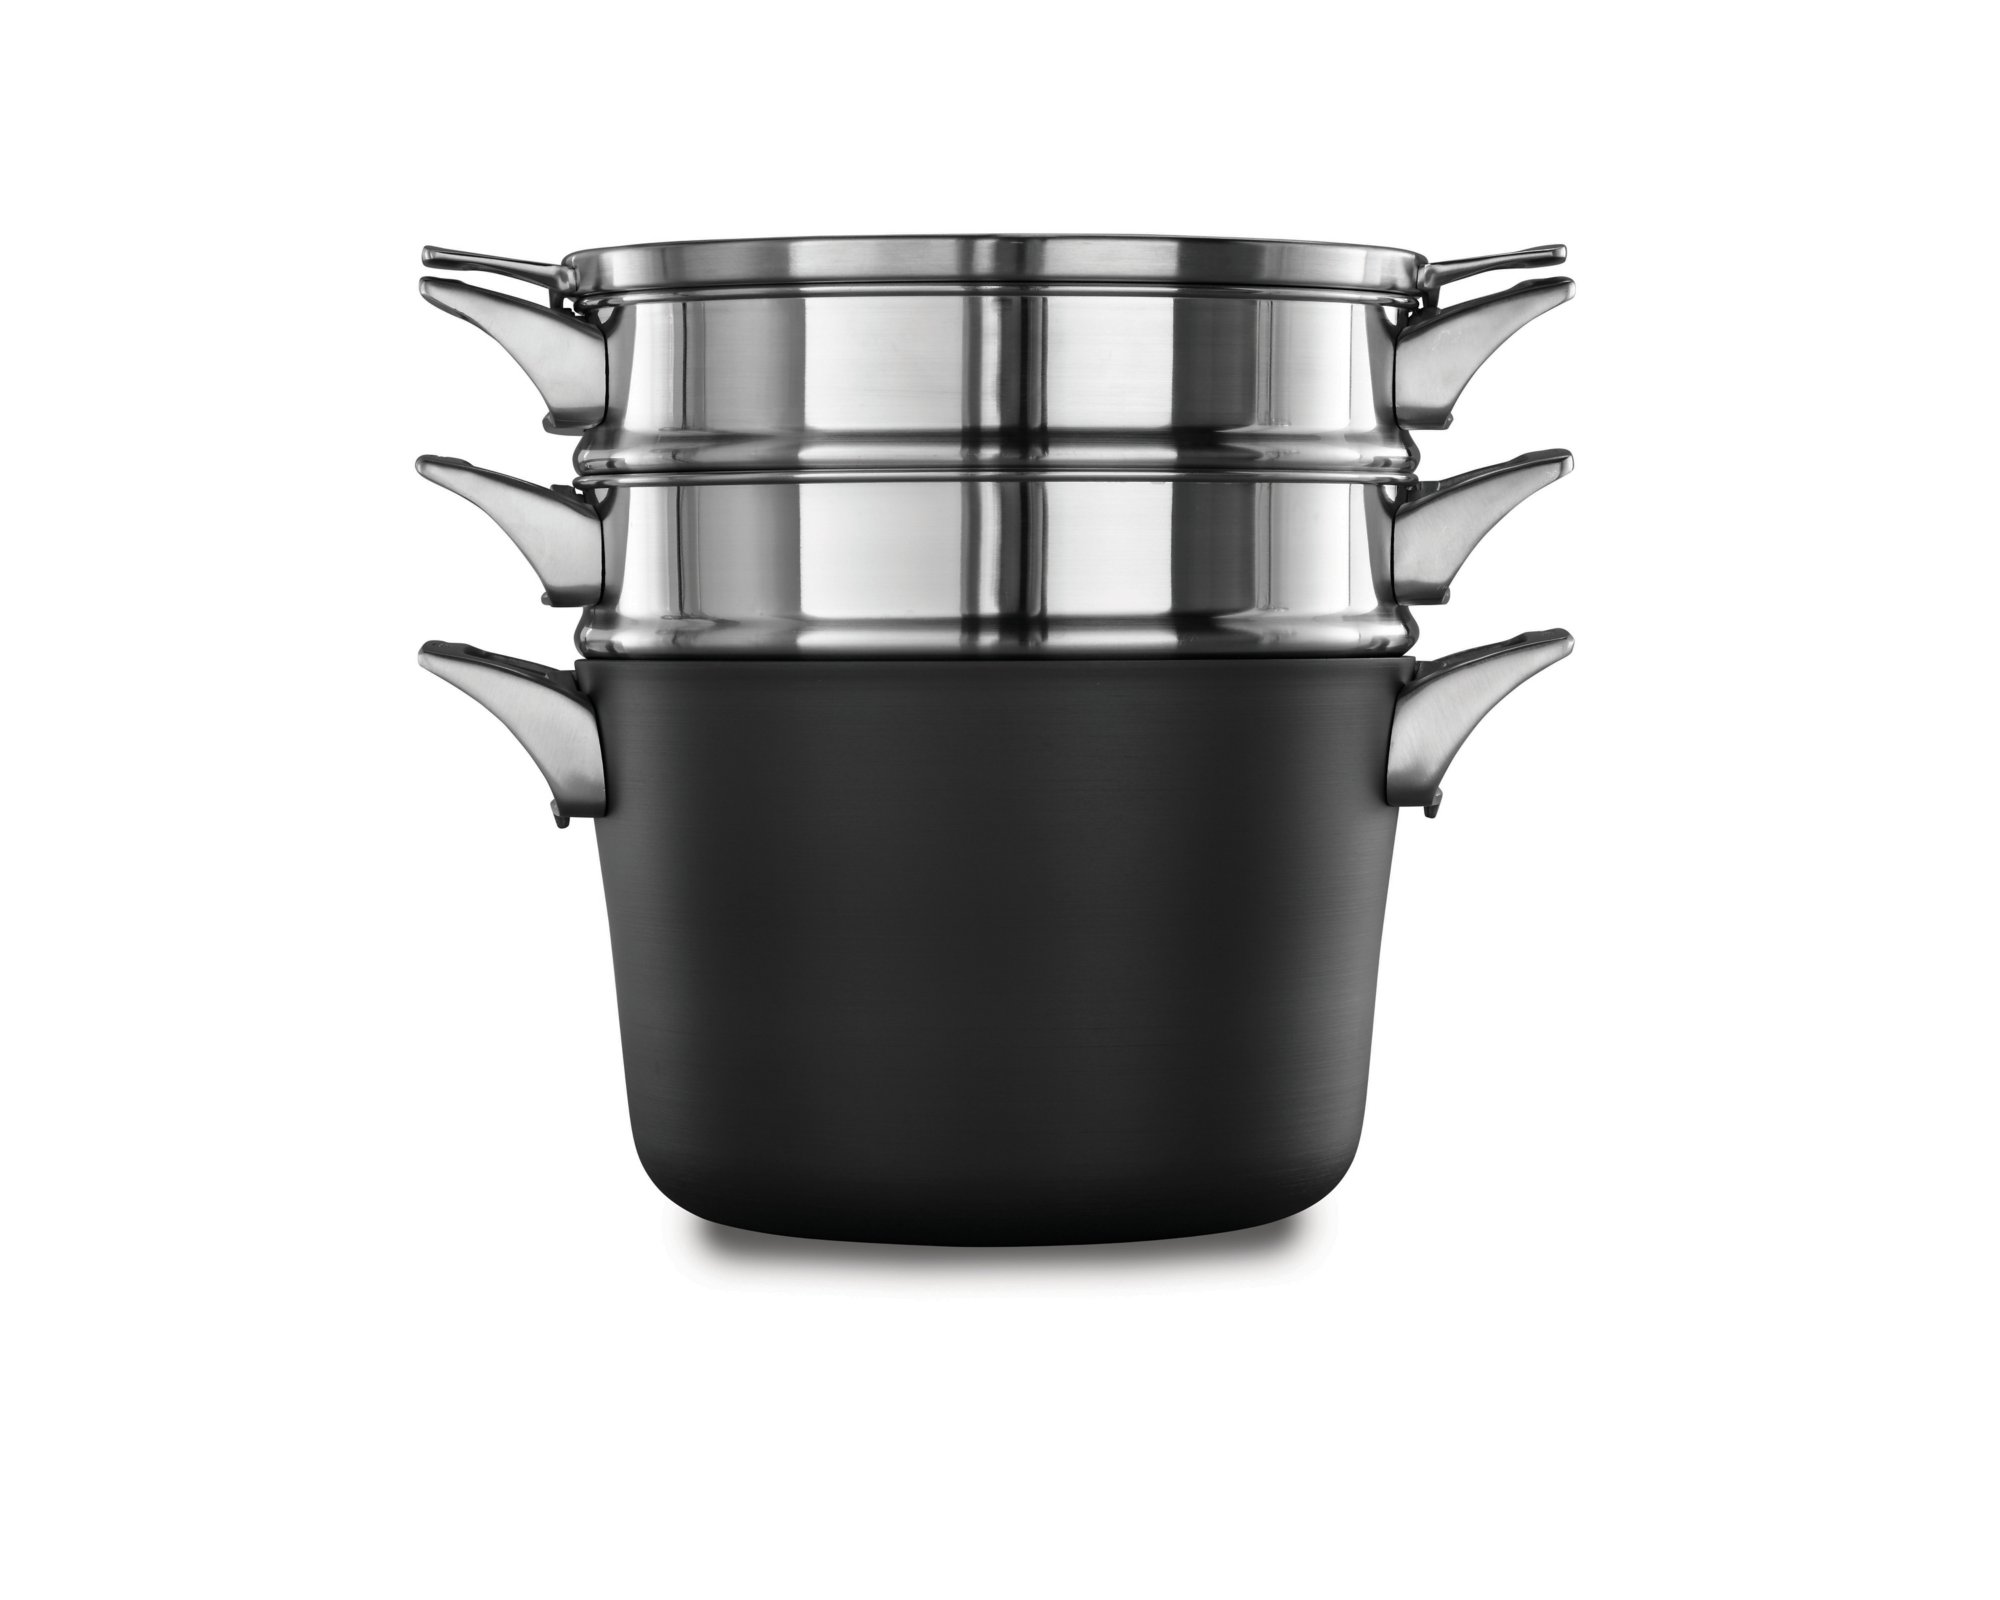 Calphalon Premier™ Space Saving Hard Anodized Nonstick 8 qt. Multi-Pot with Cover